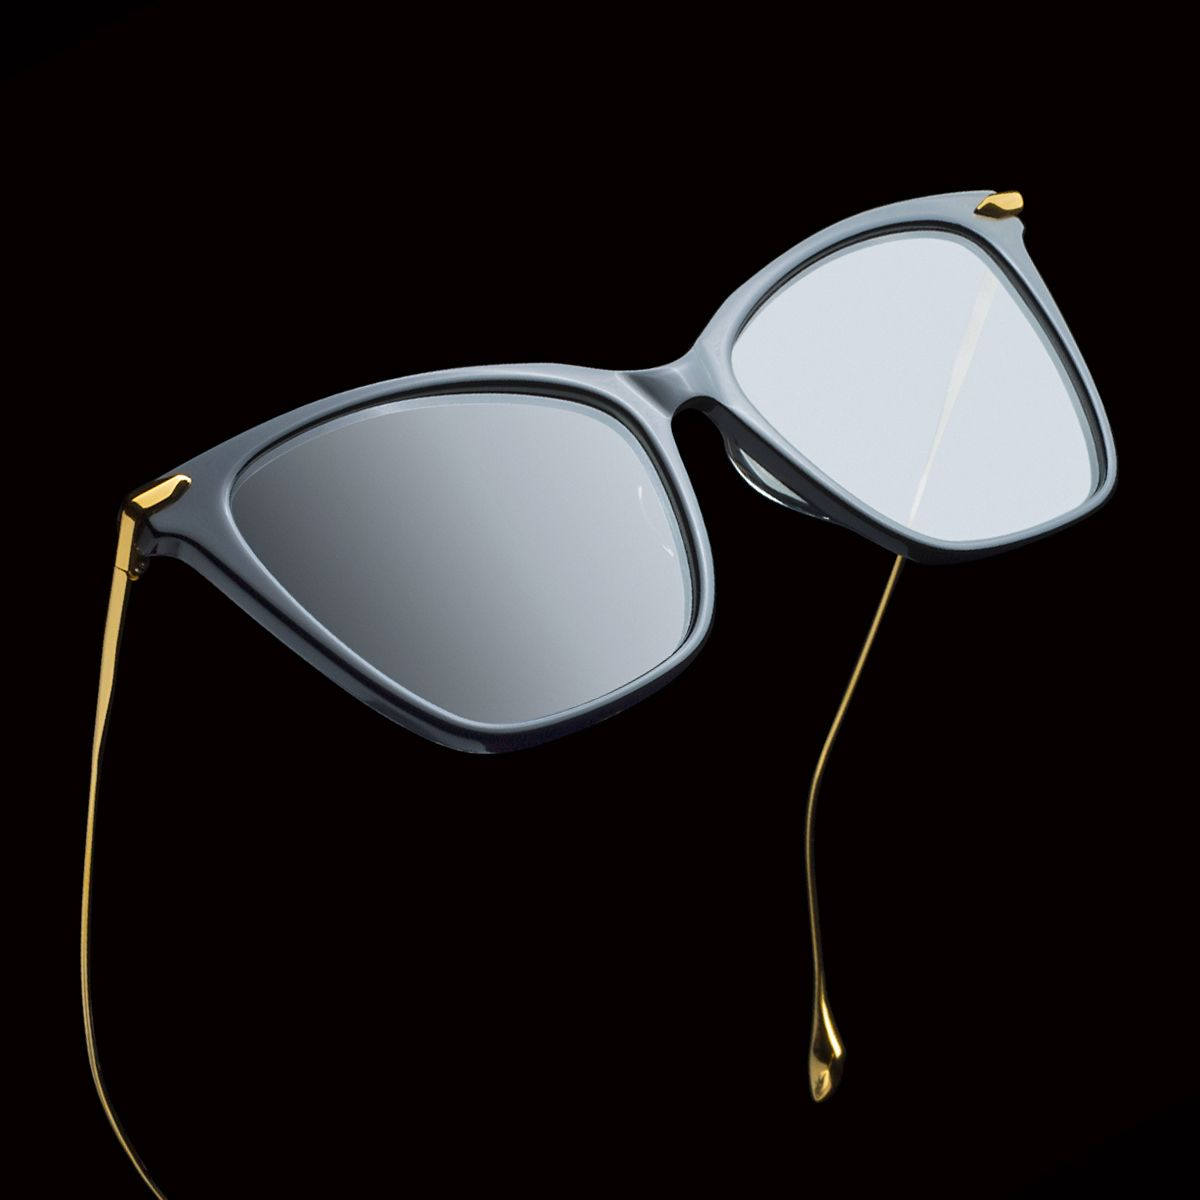 323d8566d5 The wait is over...the Fearless is now available online.  DITAeyewear